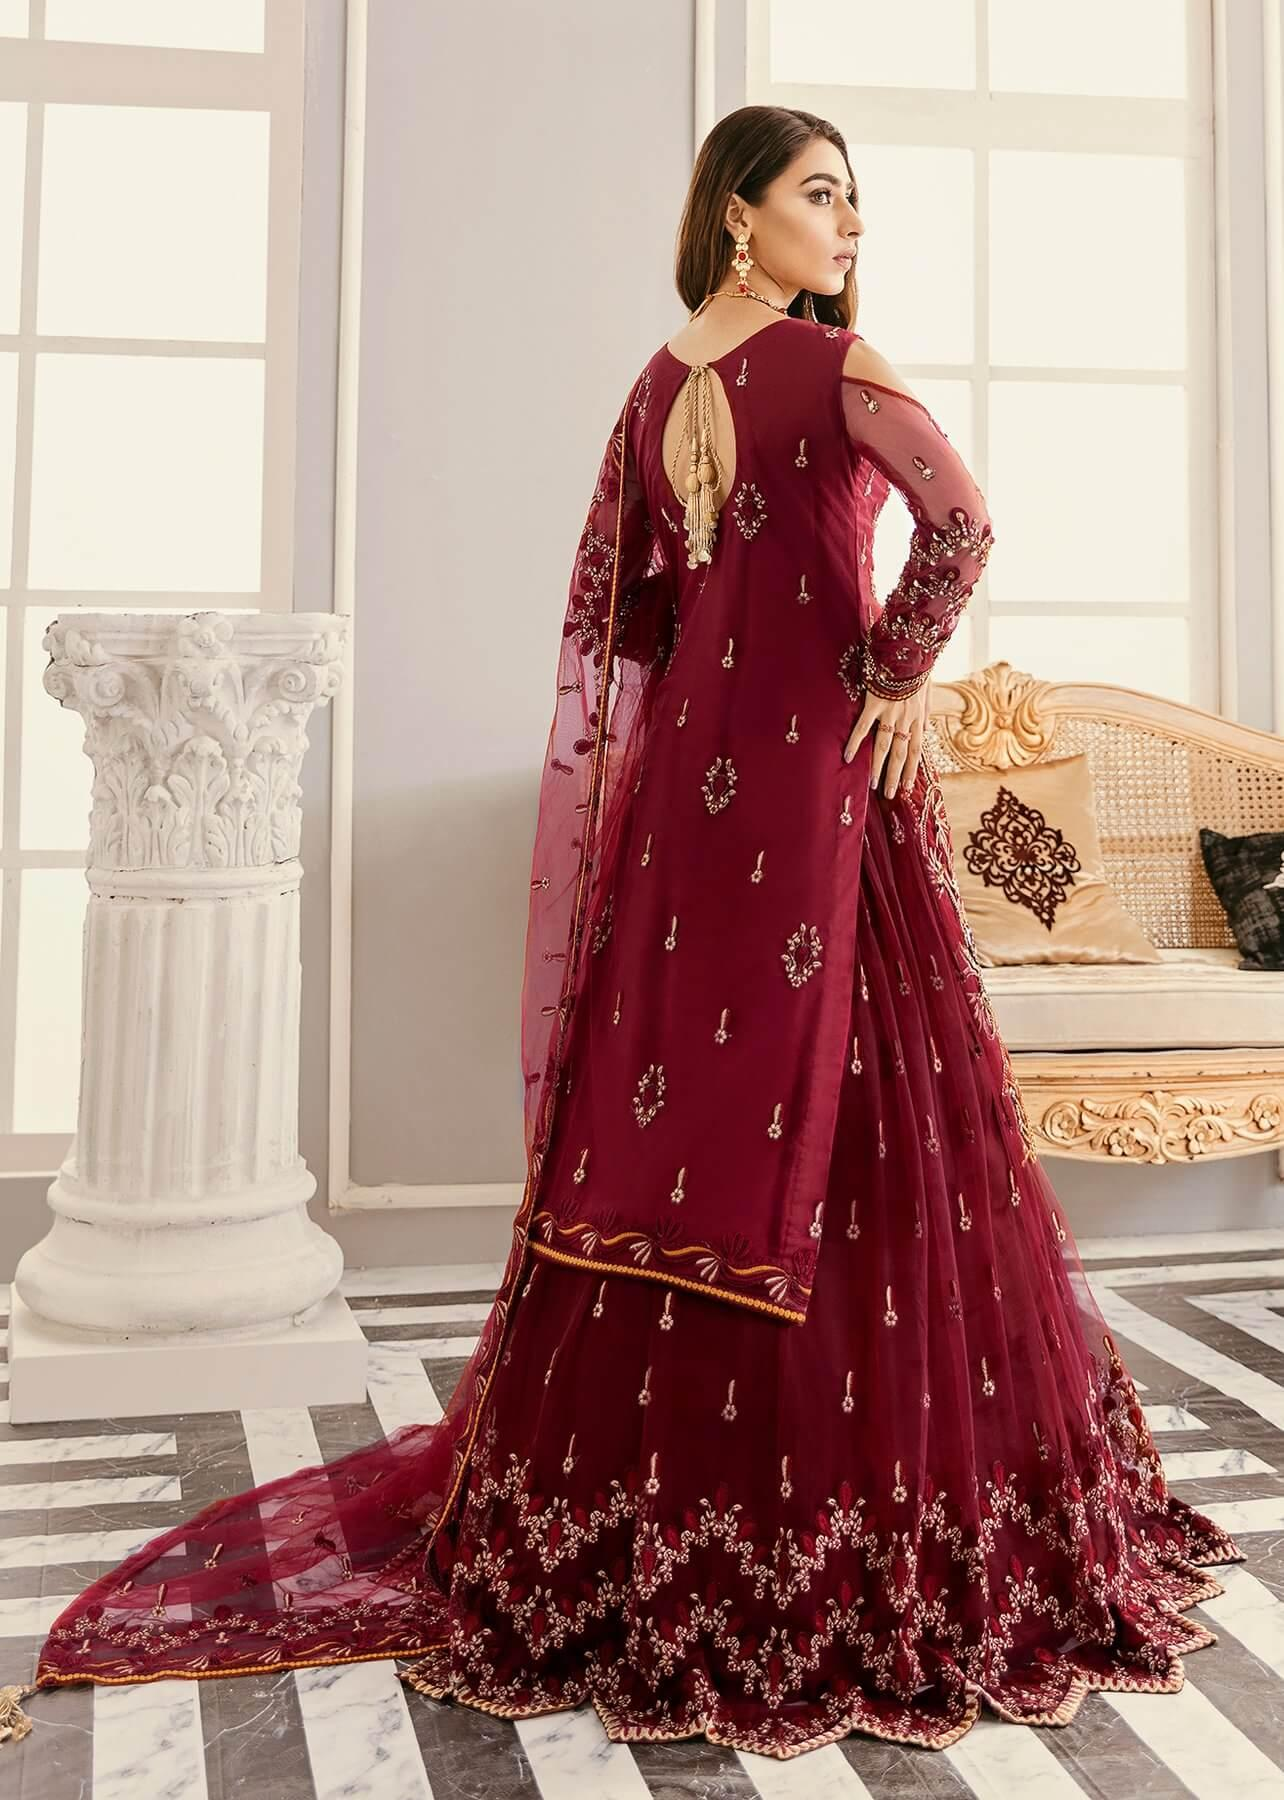 Akbar Aslam Libas e Khas Wedding Collection 3pc Suit AAWC-1328 AMARYLLIS